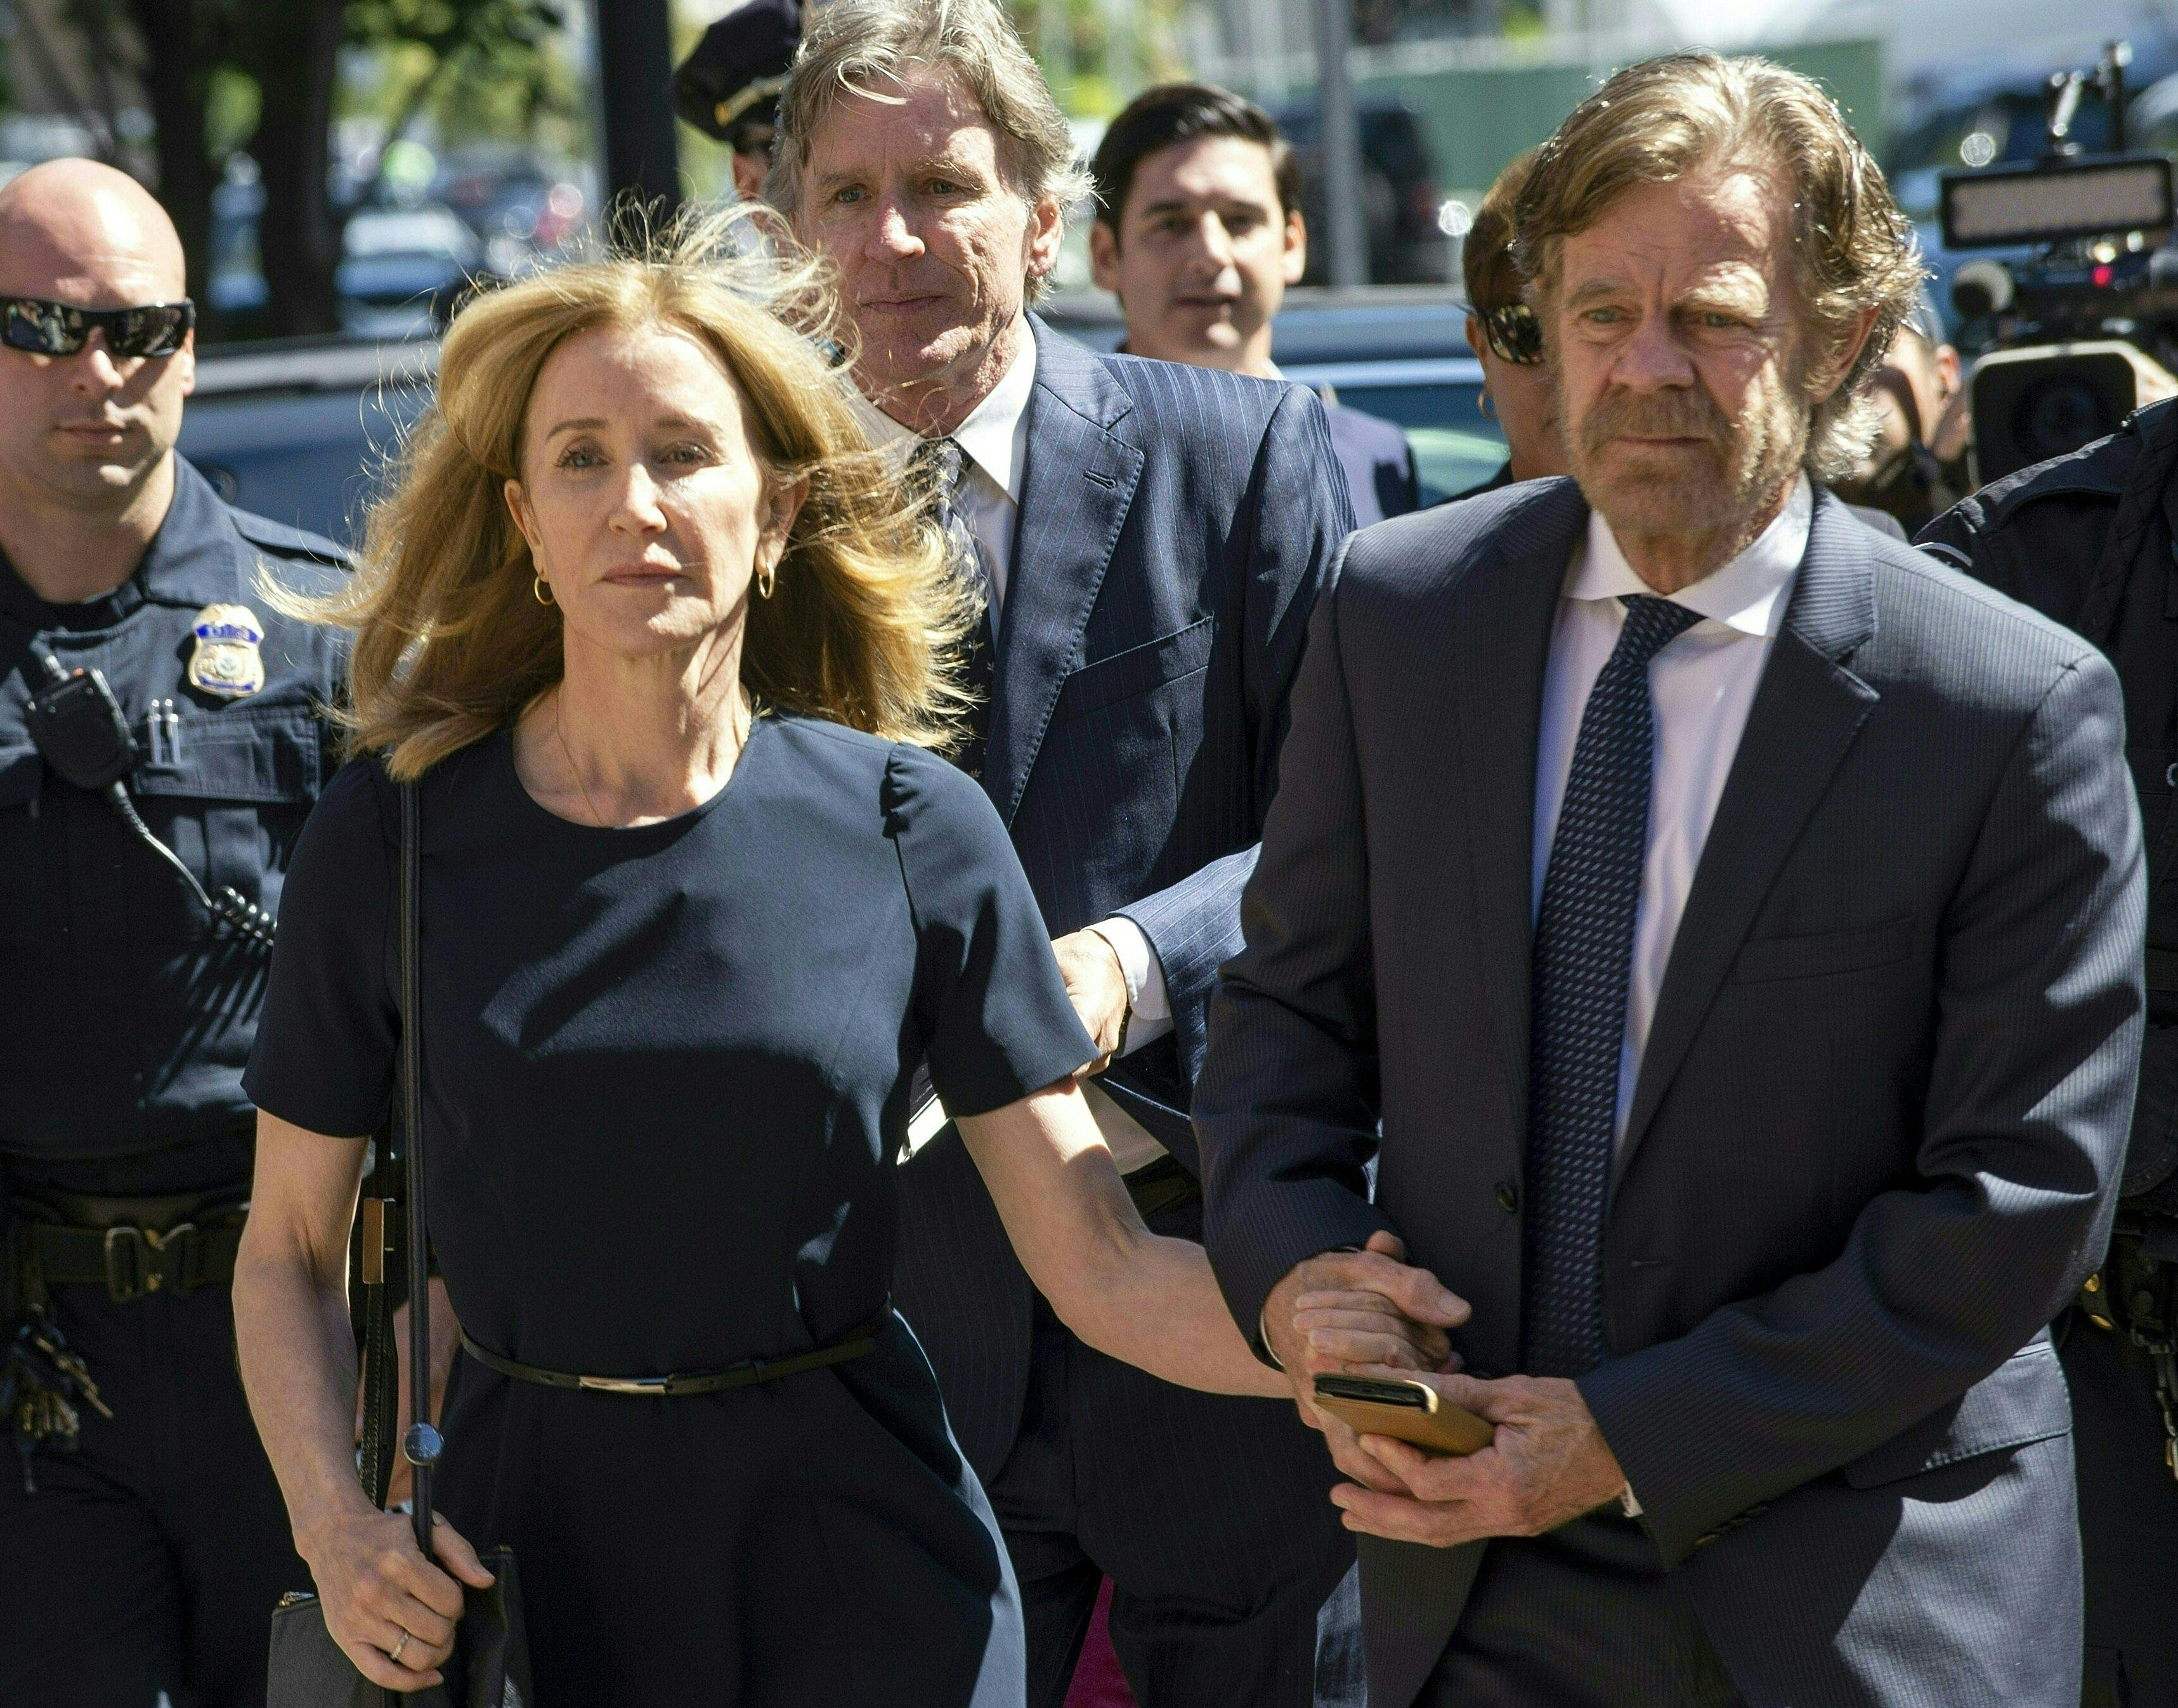 Felicity Huffman's daughter Georgia indicates she's going to college following admissions scandal